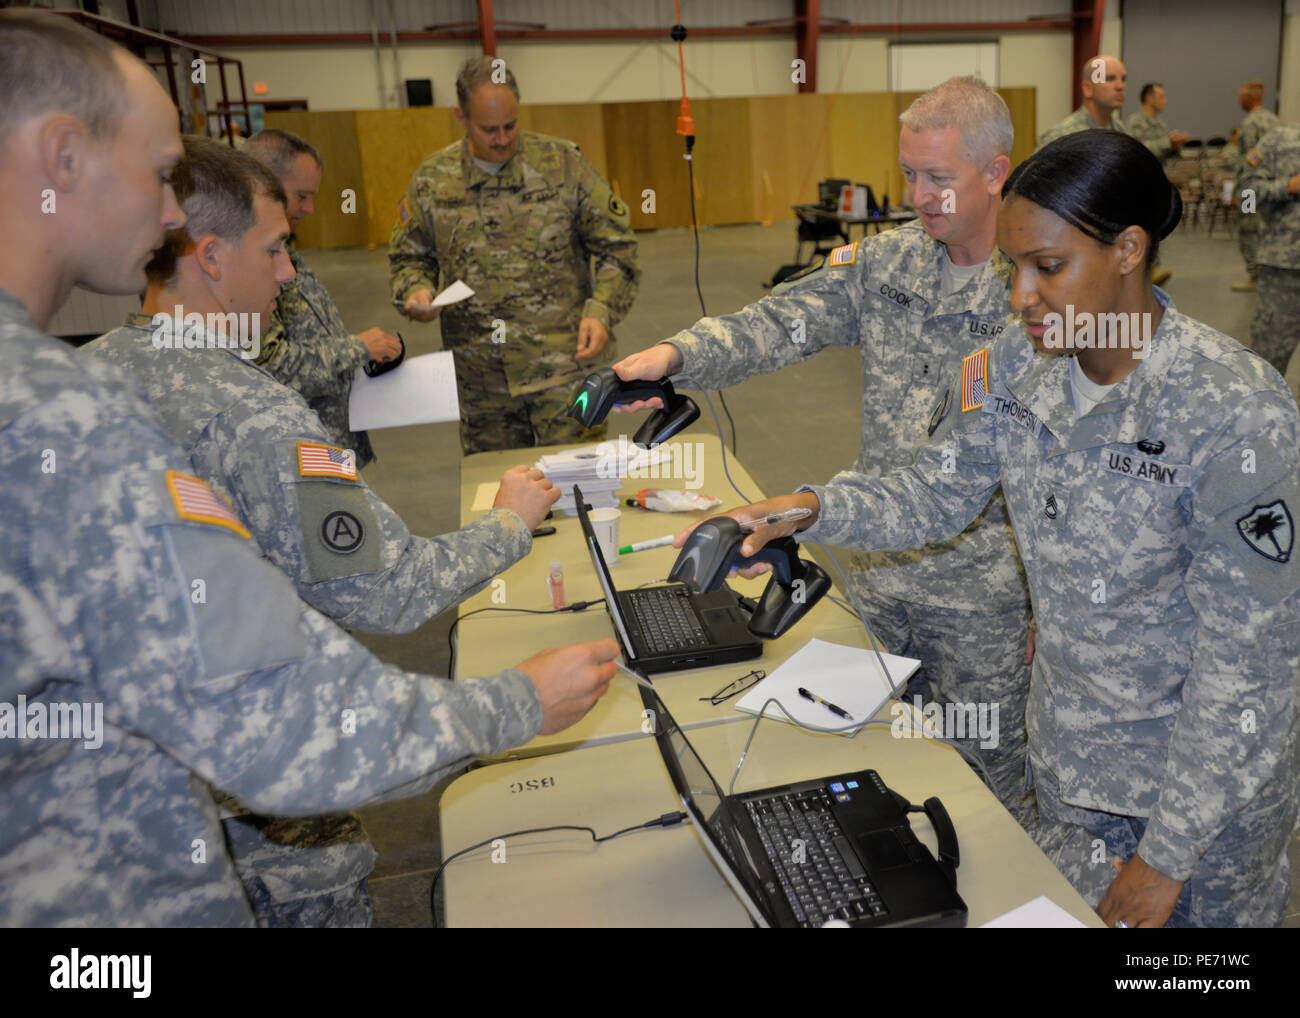 South Carolina Army National Guard prepares hundreds of North